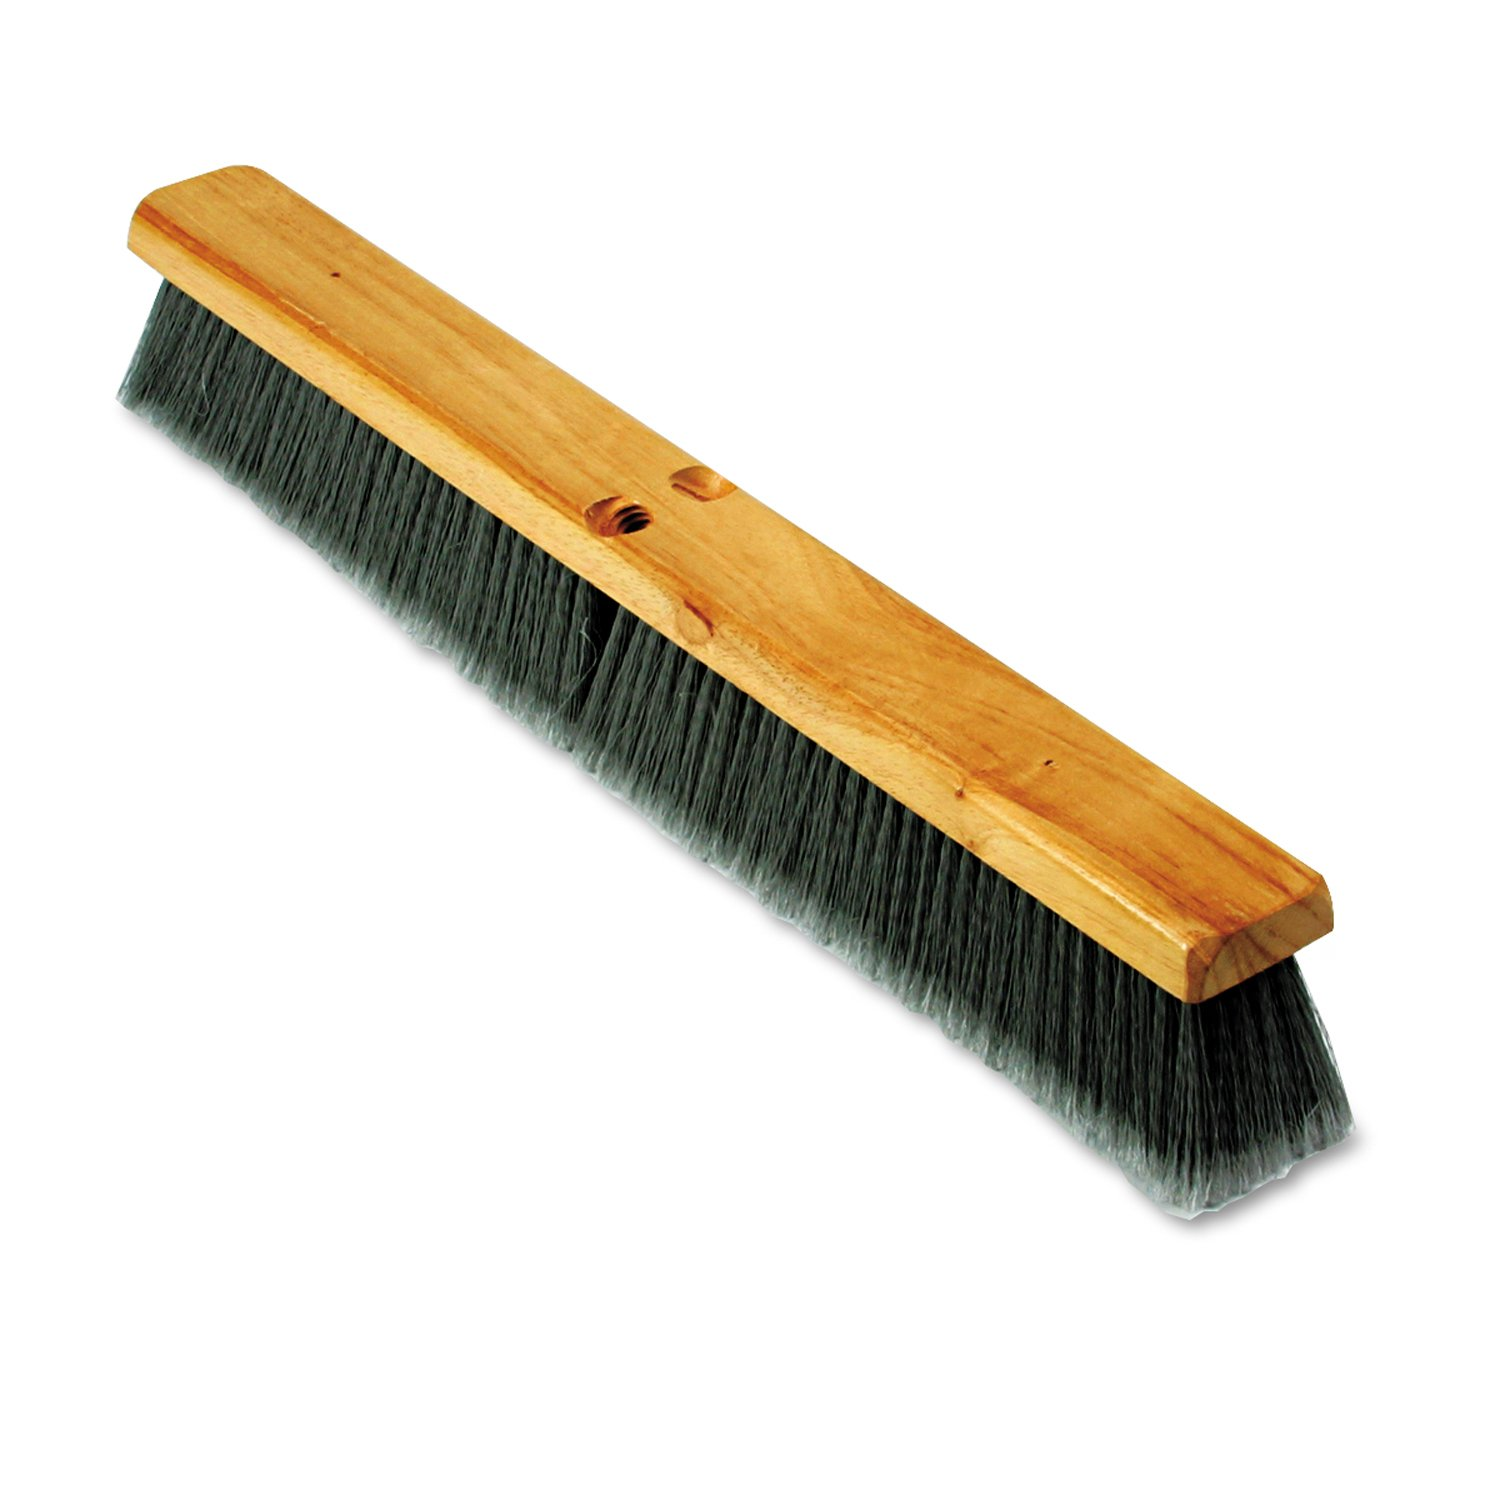 Boardwalk 20424 Floor Brush Head, 3'' Gray Flagged Polypropylene, 24'' by Boardwalk